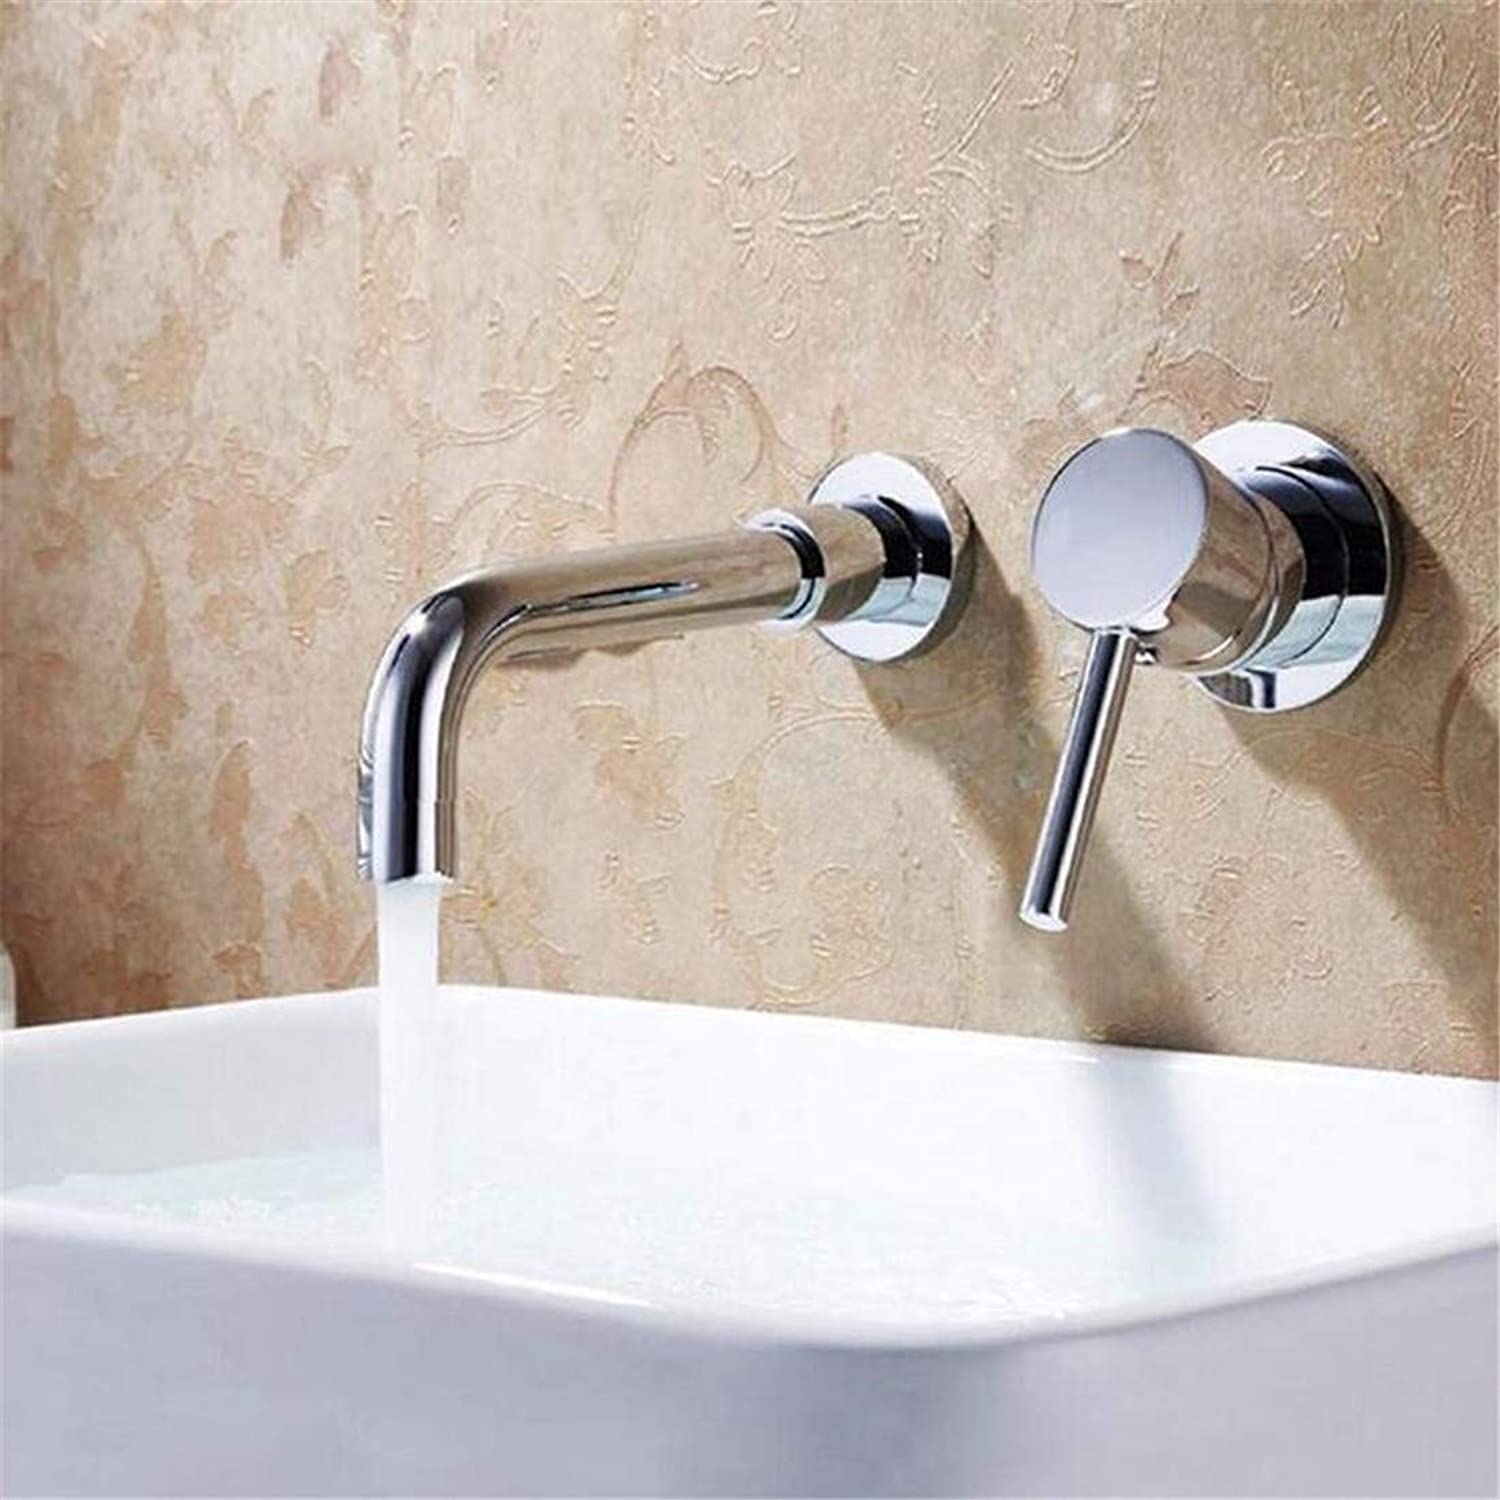 Modern Hot and Cold Vintage Platingfaucets Basin Mixer All The Copper Hot and Cold Into The Wall Dark Mounted Basin Faucet